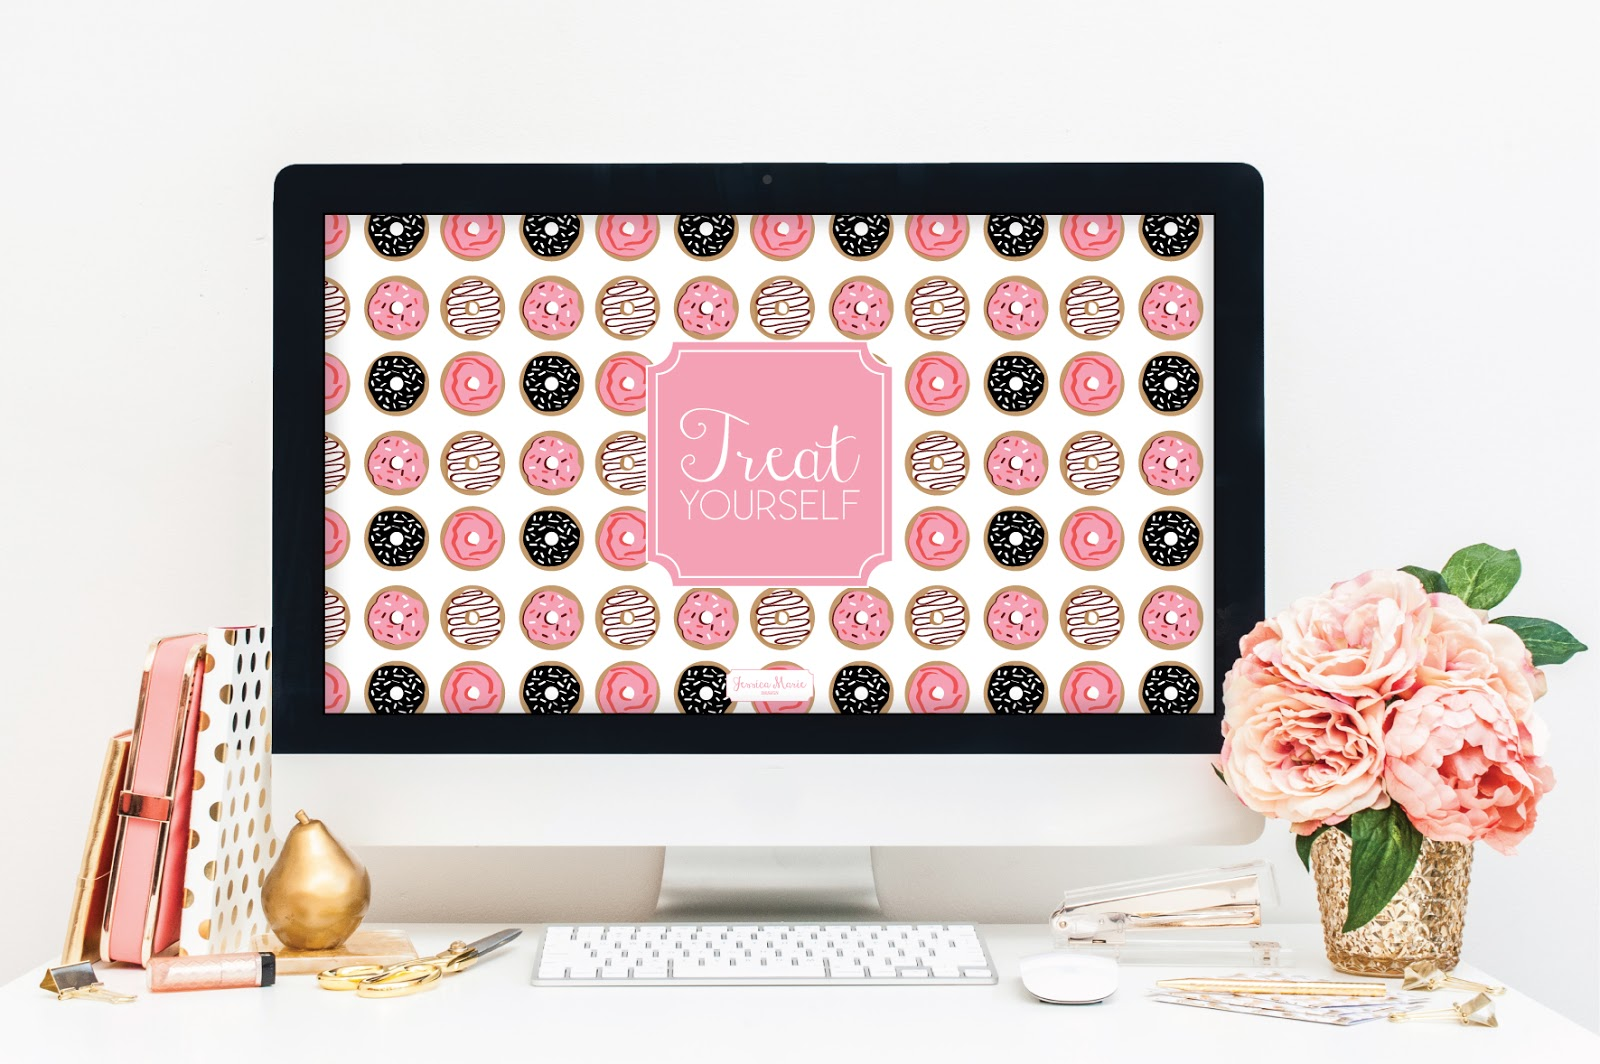 Treat Yourself Wallpaper by Jessica Marie Design